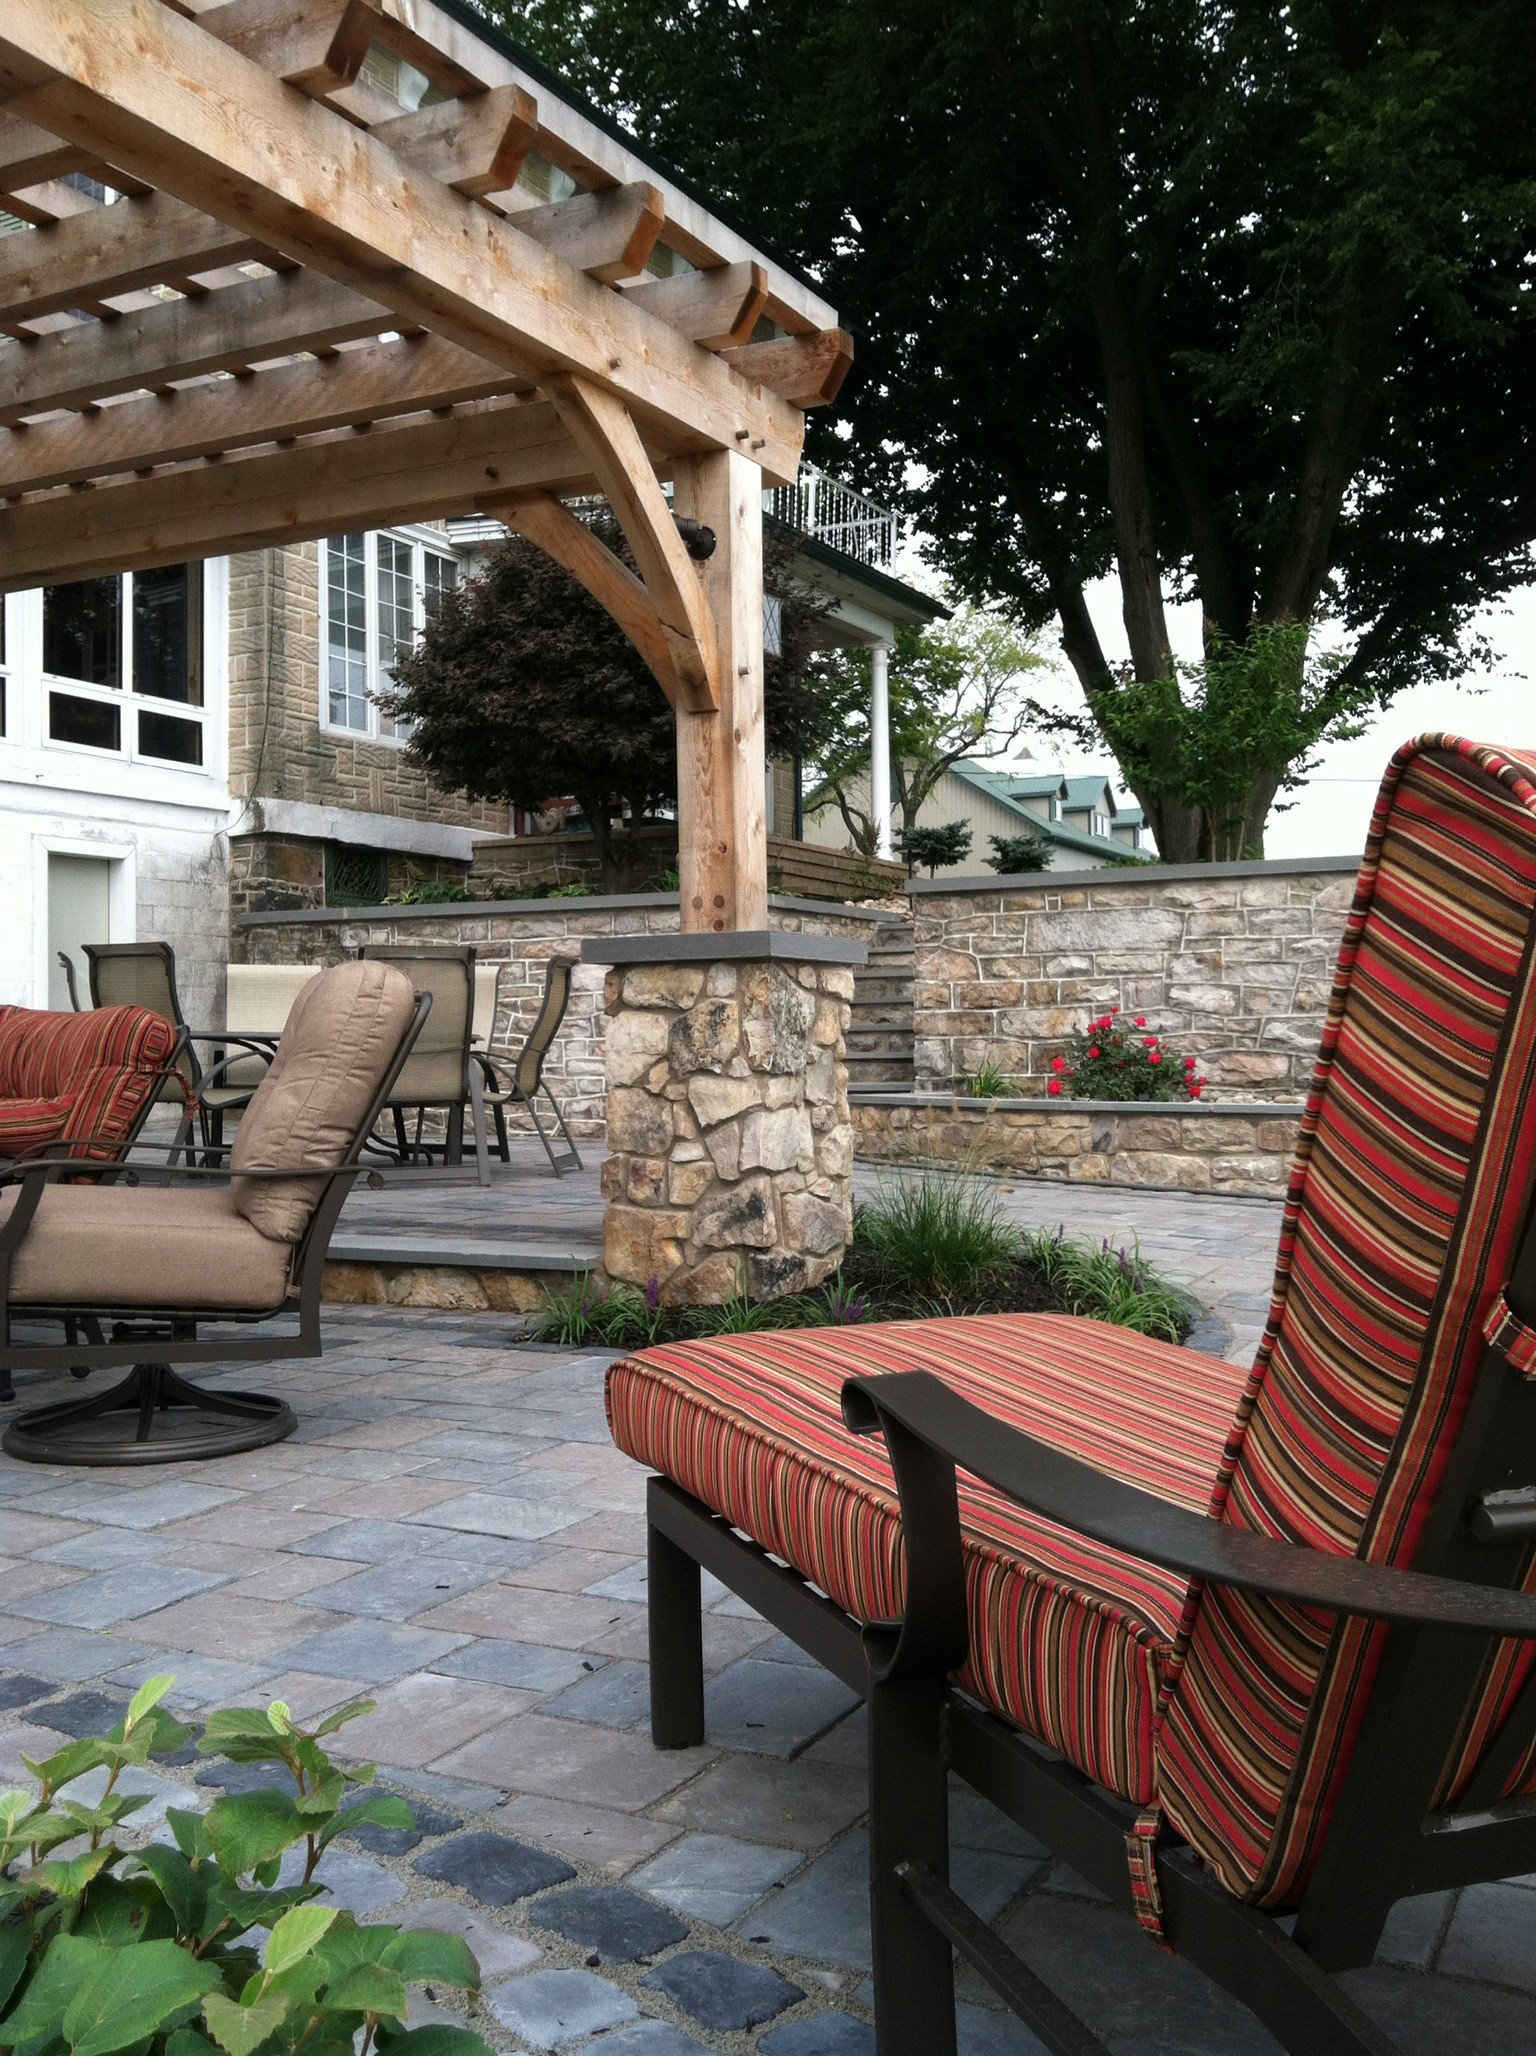 Inspiring landscape patio ideas in Exeter, PA